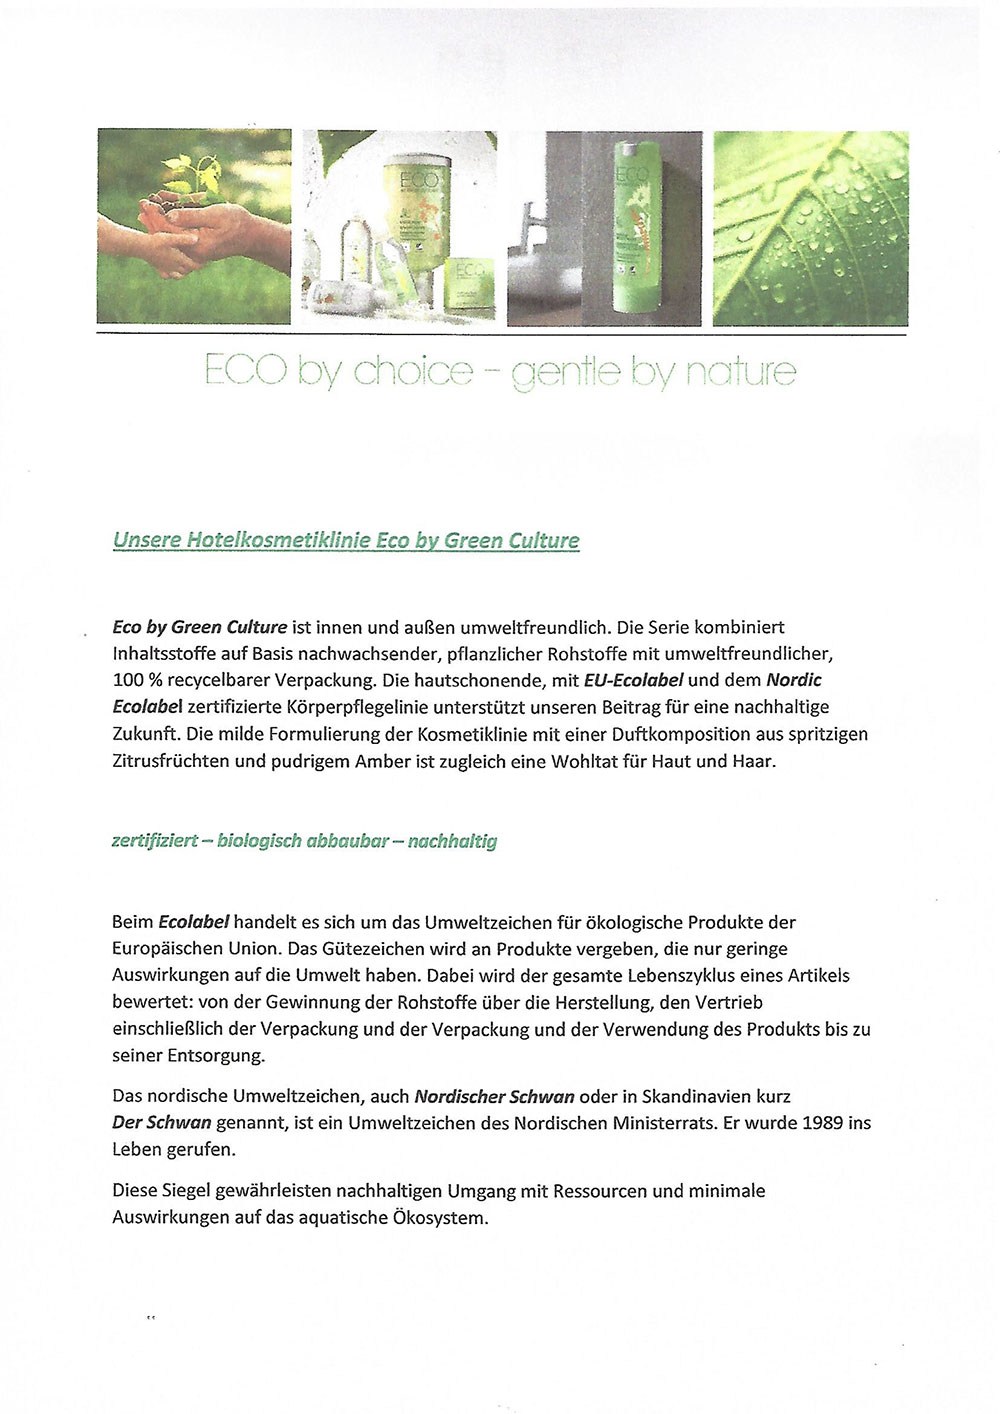 Eco-by-Green-Culture-1.jpg